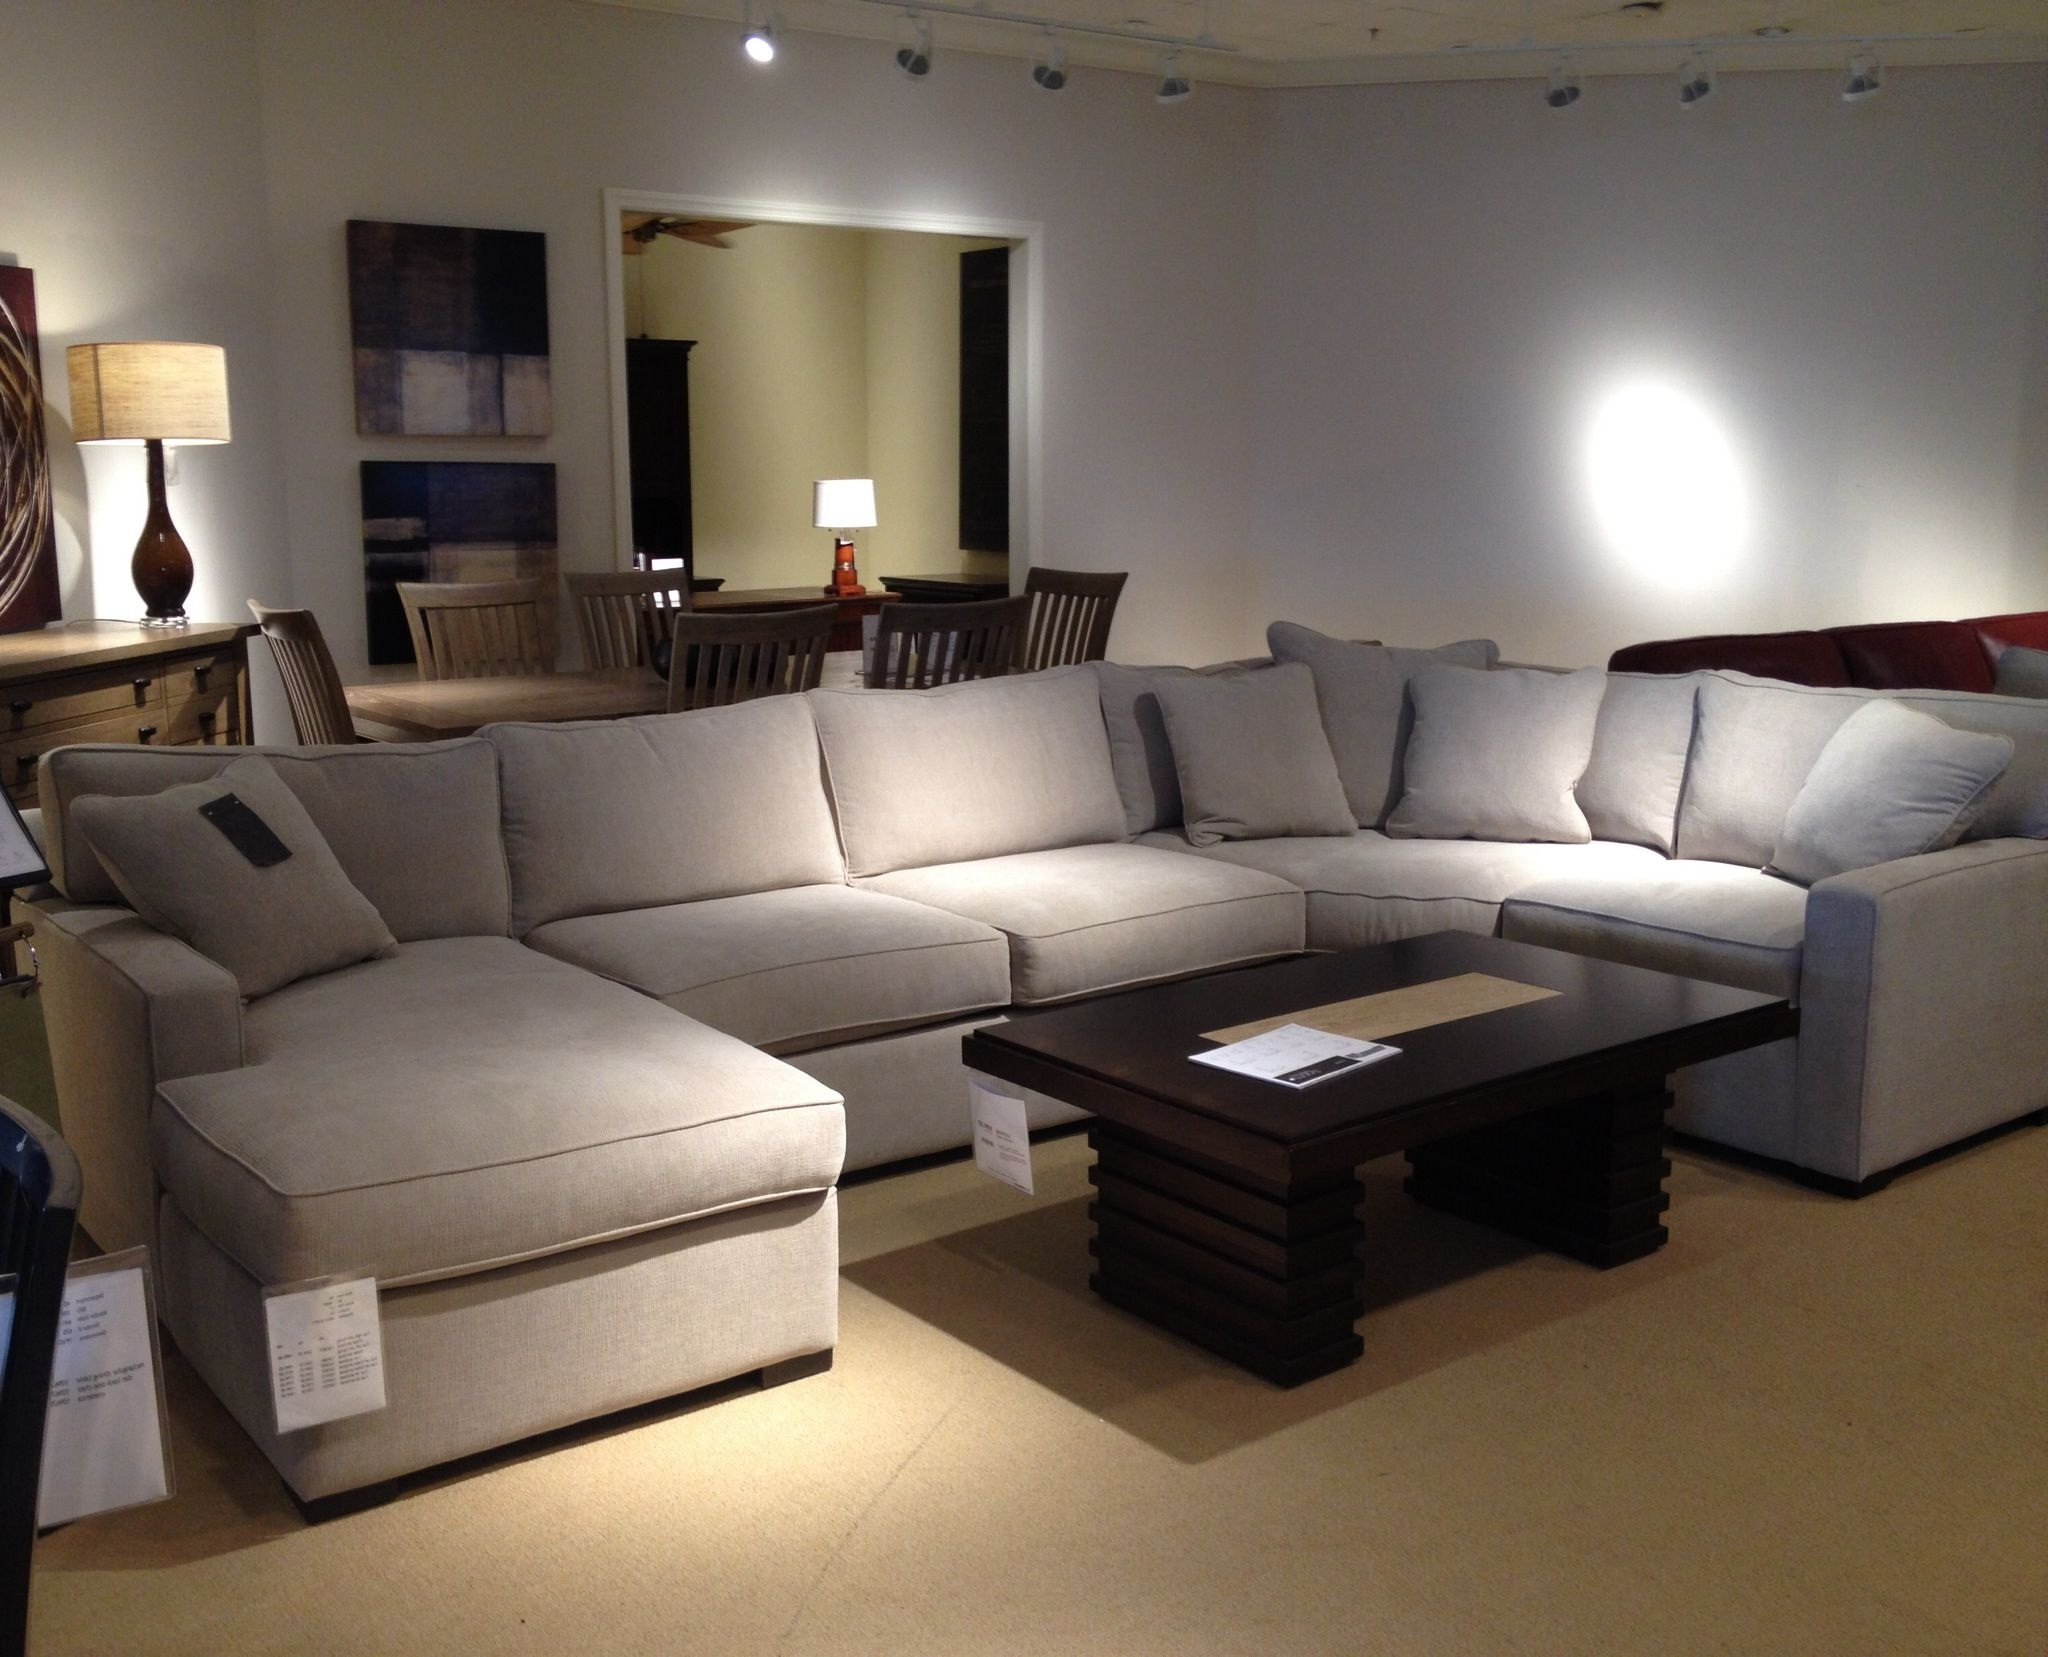 2019 Macys Sectional Sofas Within Radley 4 Piece Sectional Sofa From Macys. What's Great Is We Can (Gallery 9 of 20)